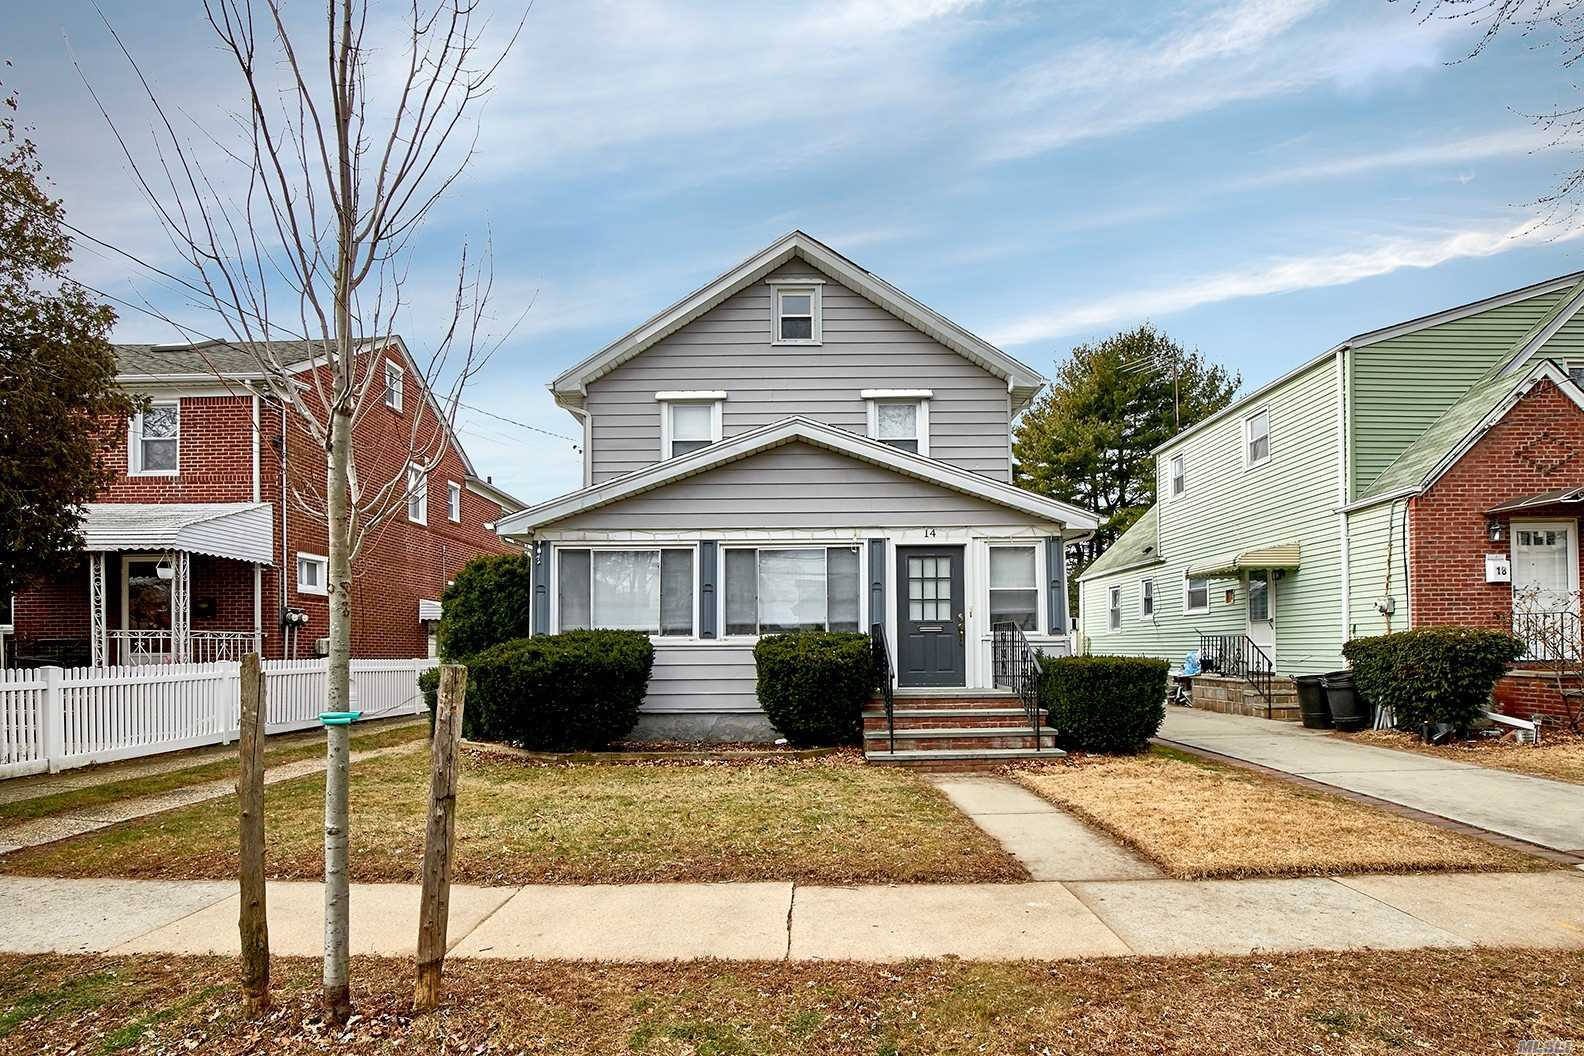 Colonial Located In Desirable Floral Park Sd #22 Boasts Enclosed Front Porch, Large Living Room With High Ceilings, Fdr, Eik With Pantry, 2 Full Baths, 3 Bedrooms, Attic, Full Basement With Ose & Detached Garage.